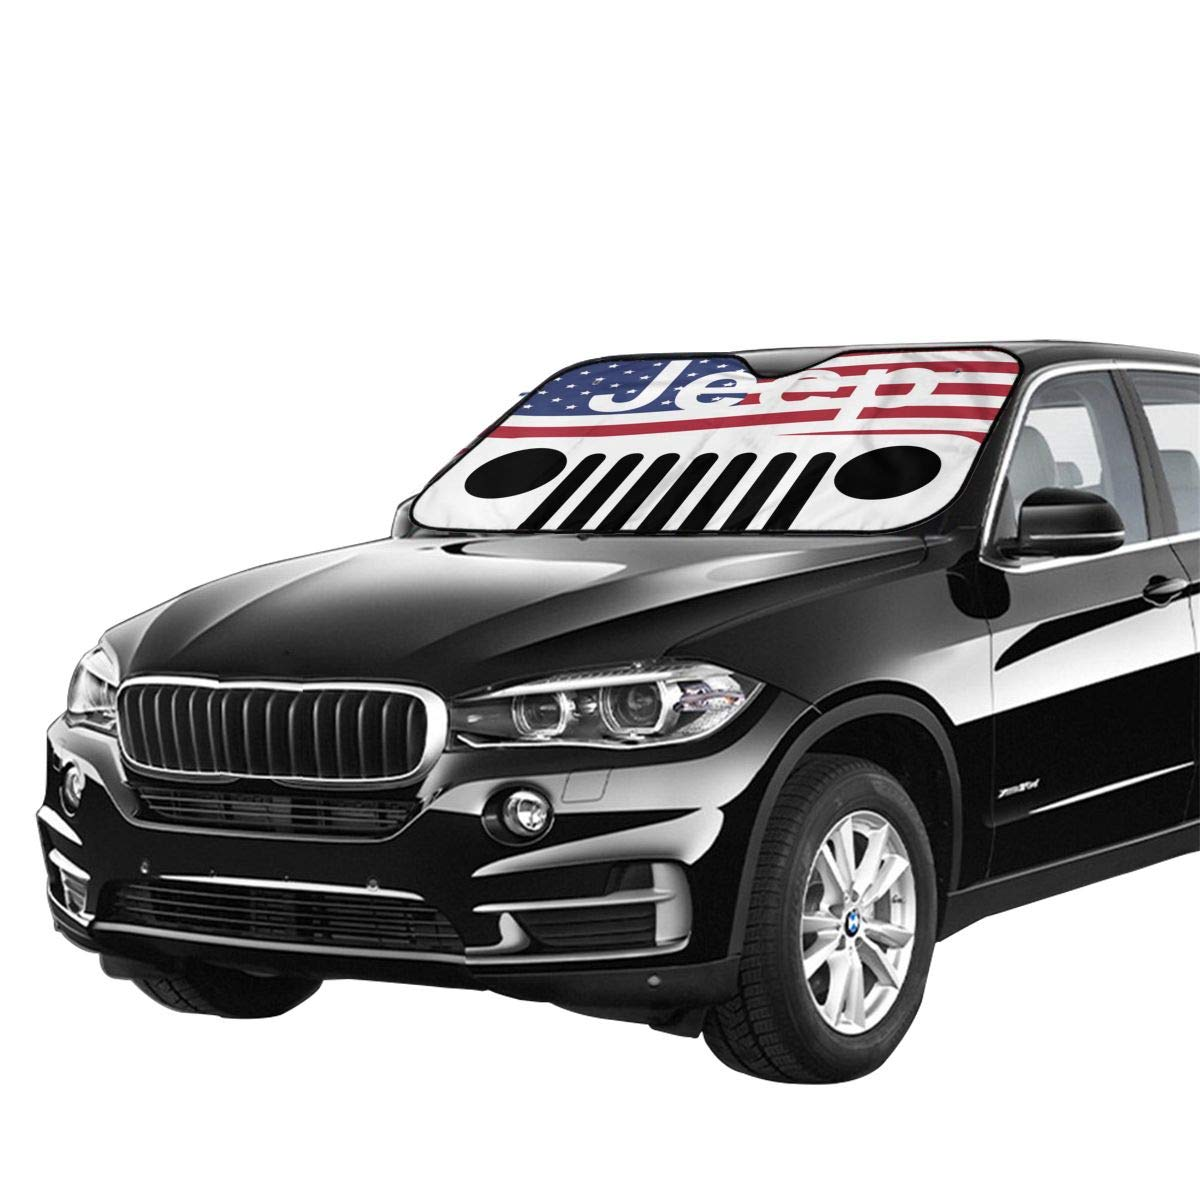 Jeep American Flag Logo Sun Shade Heat Insulation Universal Windshield Shade Thicken Foldable Aluminum UV Protector Sunshiled For SUV Truck Camper To Keep Your Car Cool 70 130 Cm